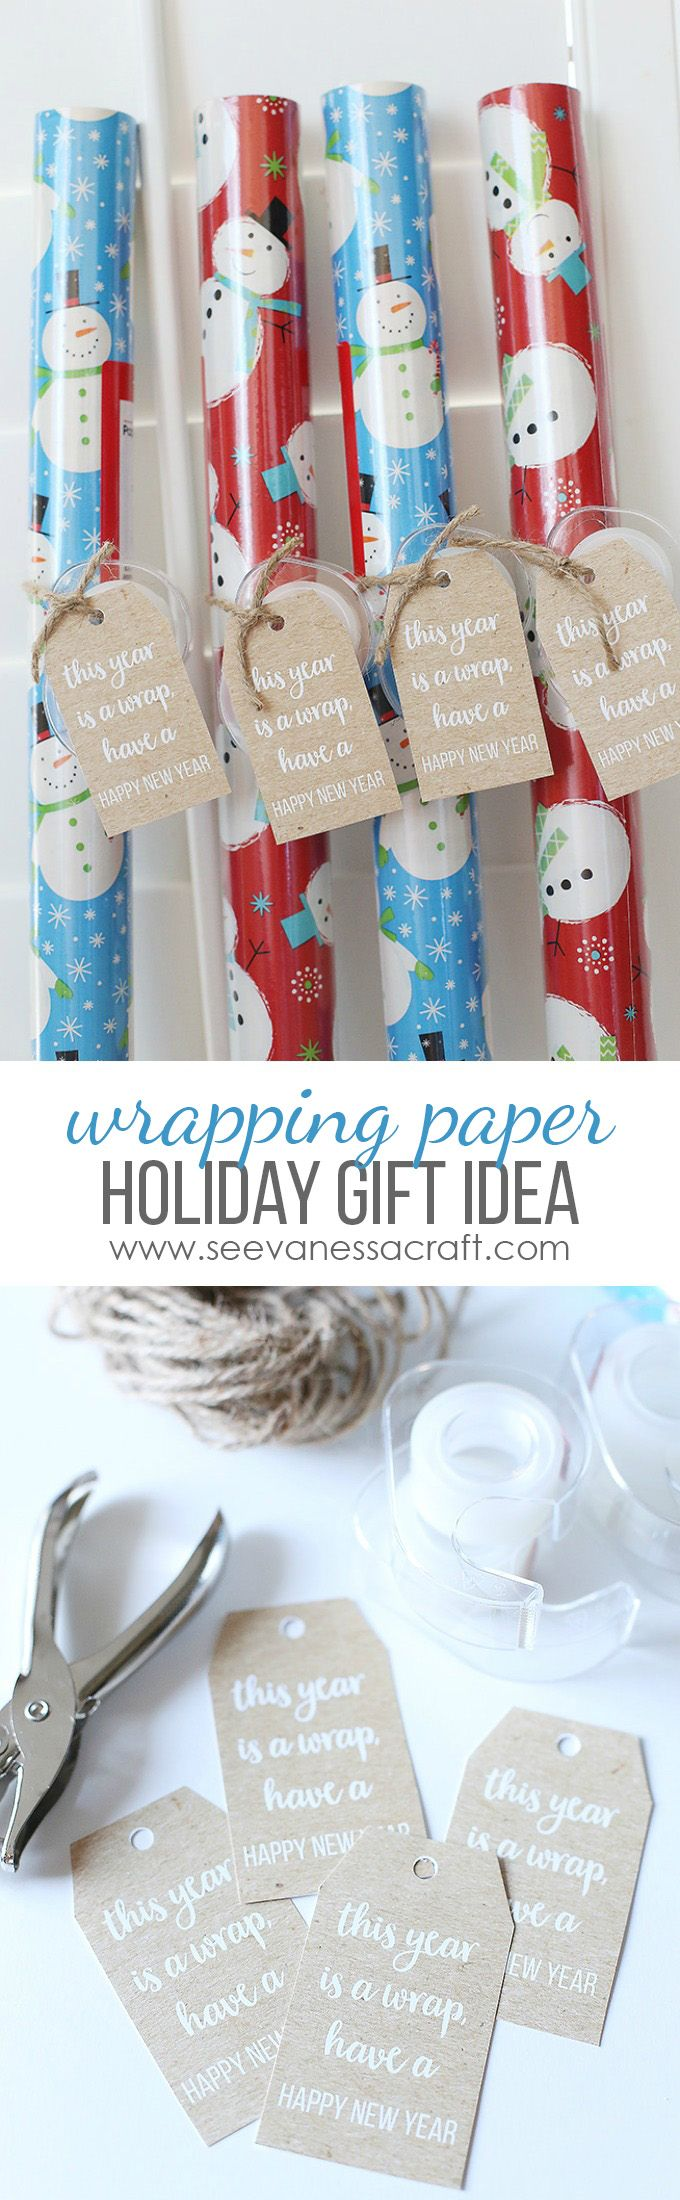 Free Printable Tags - Wrapping Paper Rolls Christmas Gift Idea for Teachers, Students, Neighbors, etc.